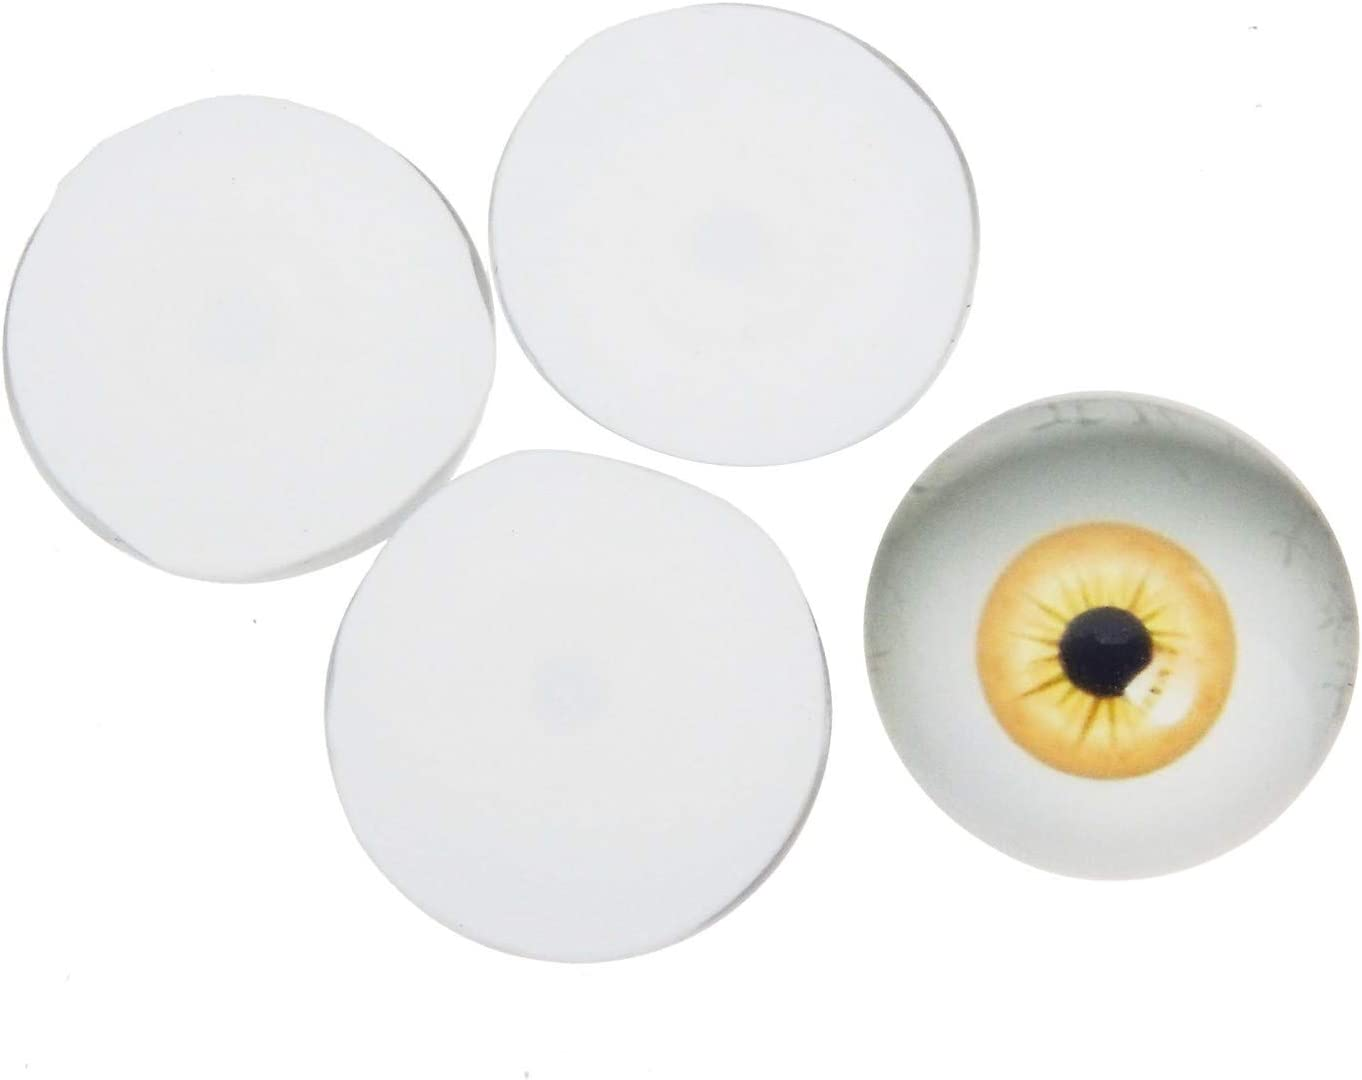 90 Pairs Mixed Size Dome Glass Human Eyes for Art Dolls Sculptures Props Masks Fursuits Jewelry Making Taxidermy Flatback 6mm 8mm 10mm 12mm 15mm 18mm 20mm 25mm 30mm